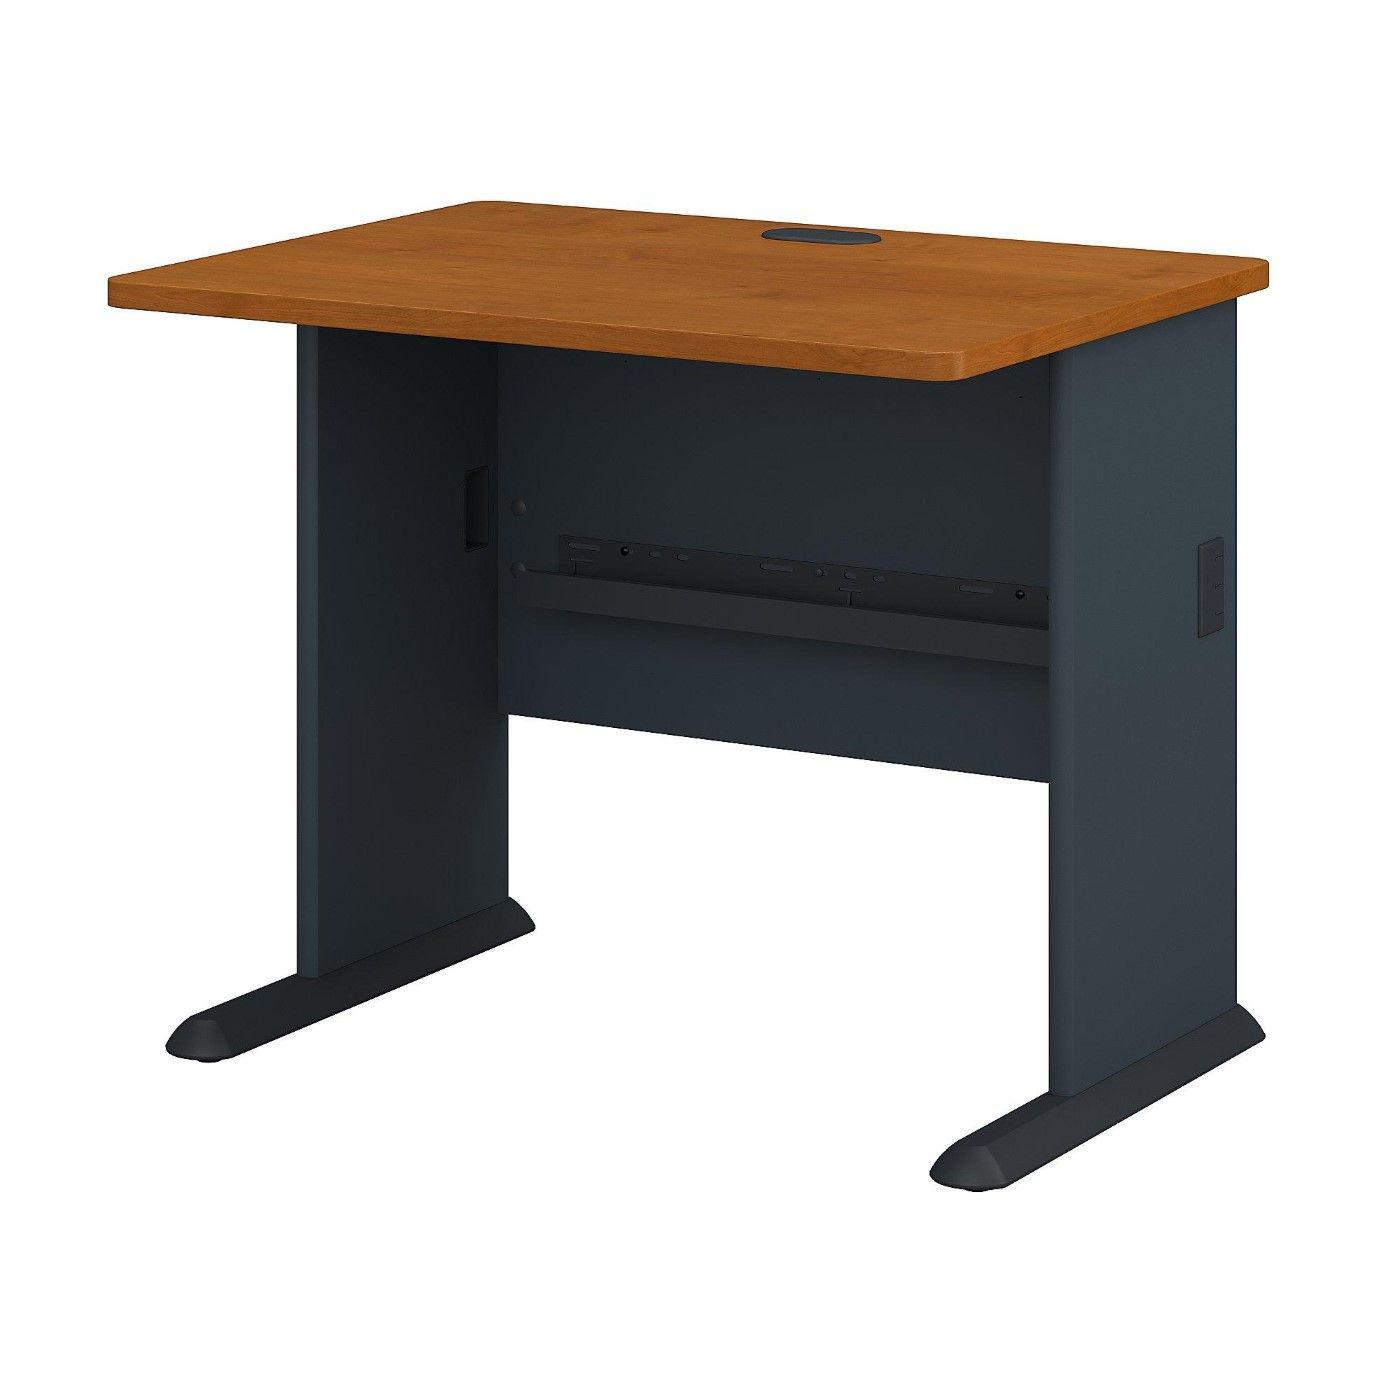 <font color=#c60><b>BUSH BUSINESS FURNITURE SERIES A 36W DESK. FREE SHIPPING</font></b>